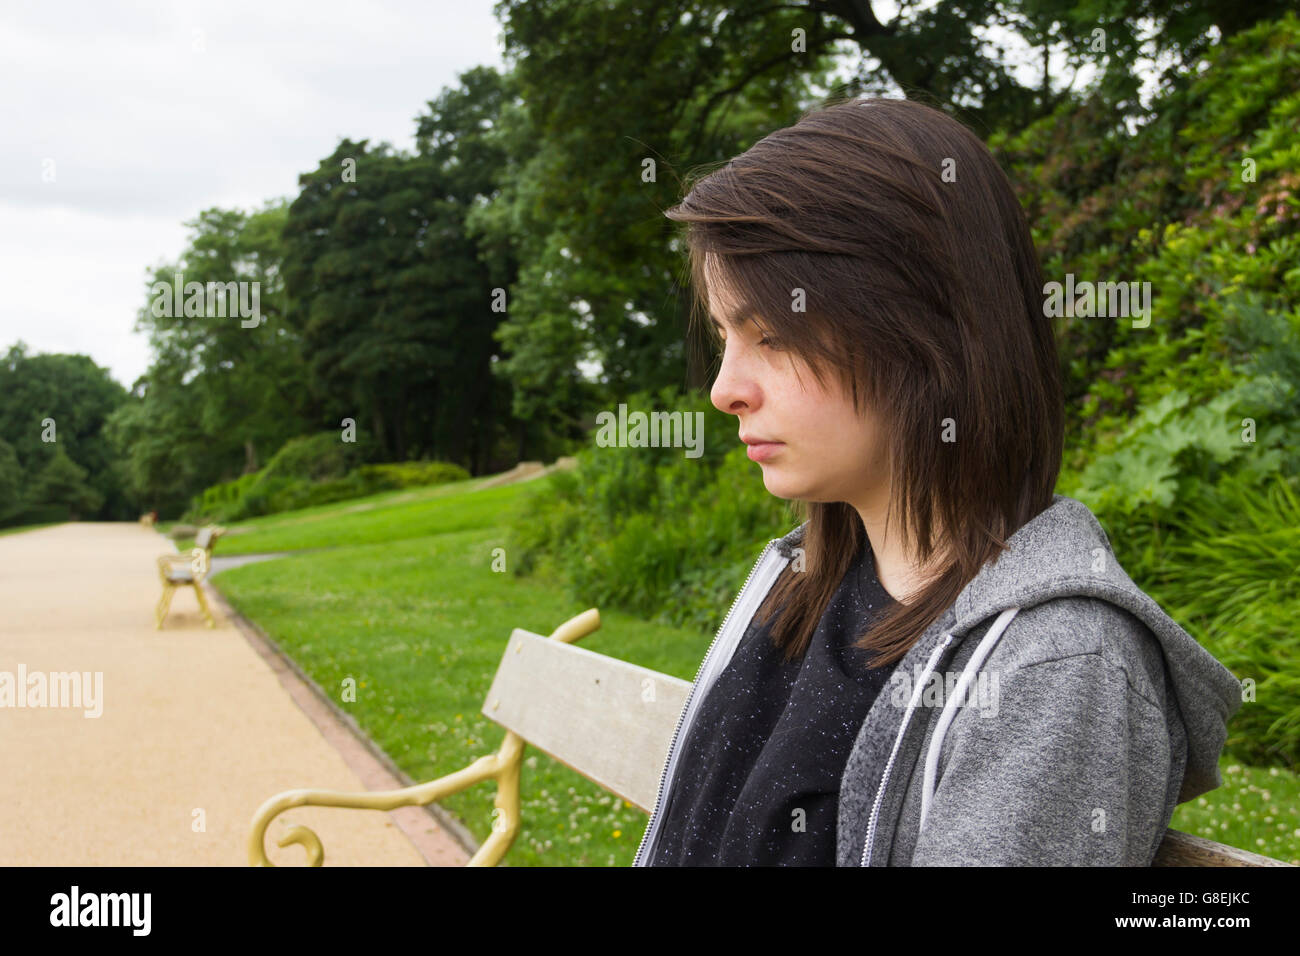 Young woman,  adult or late teens, seated in park with a solemn or slightly sad expression on her face. - Stock Image